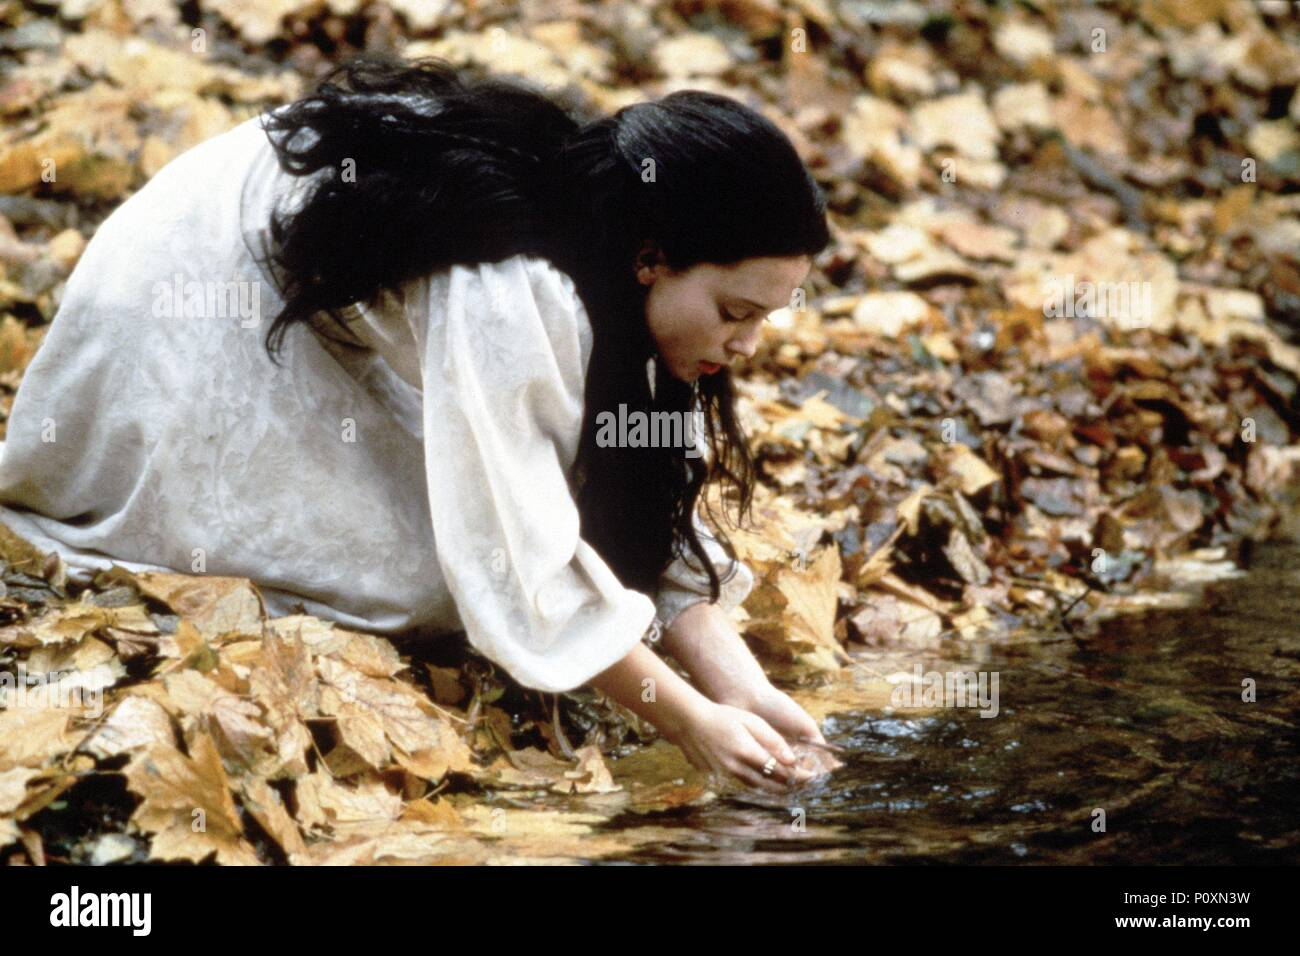 Original Film Title: SNOW WHITE: A TALE OF TERROR.  English Title: SNOW WHITE: A TALE OF TERROR.  Film Director: MICHAEL COHN.  Year: 1997. - Stock Image